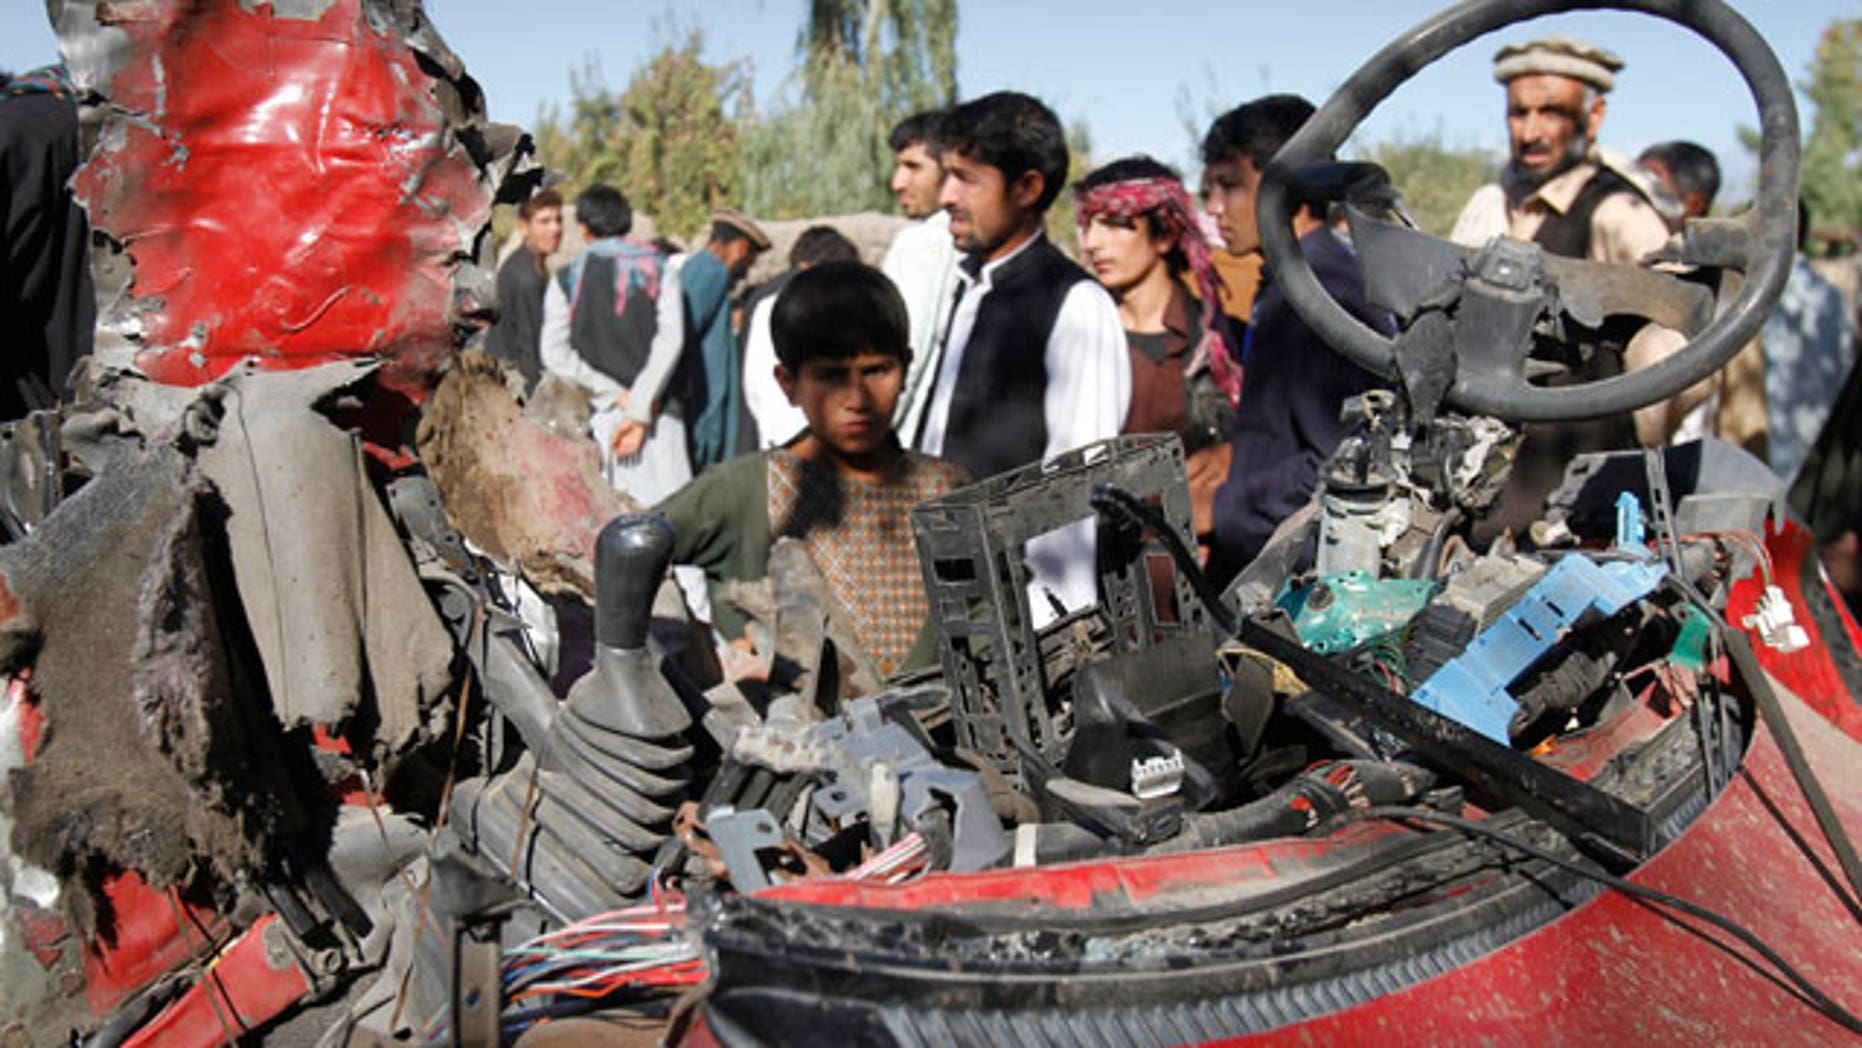 Nov. 12, 2011: Afghans stand around wreckage of a civilian car, which was hit by a roadside bomb in Laghman, east of Kabul, Afghanistan.